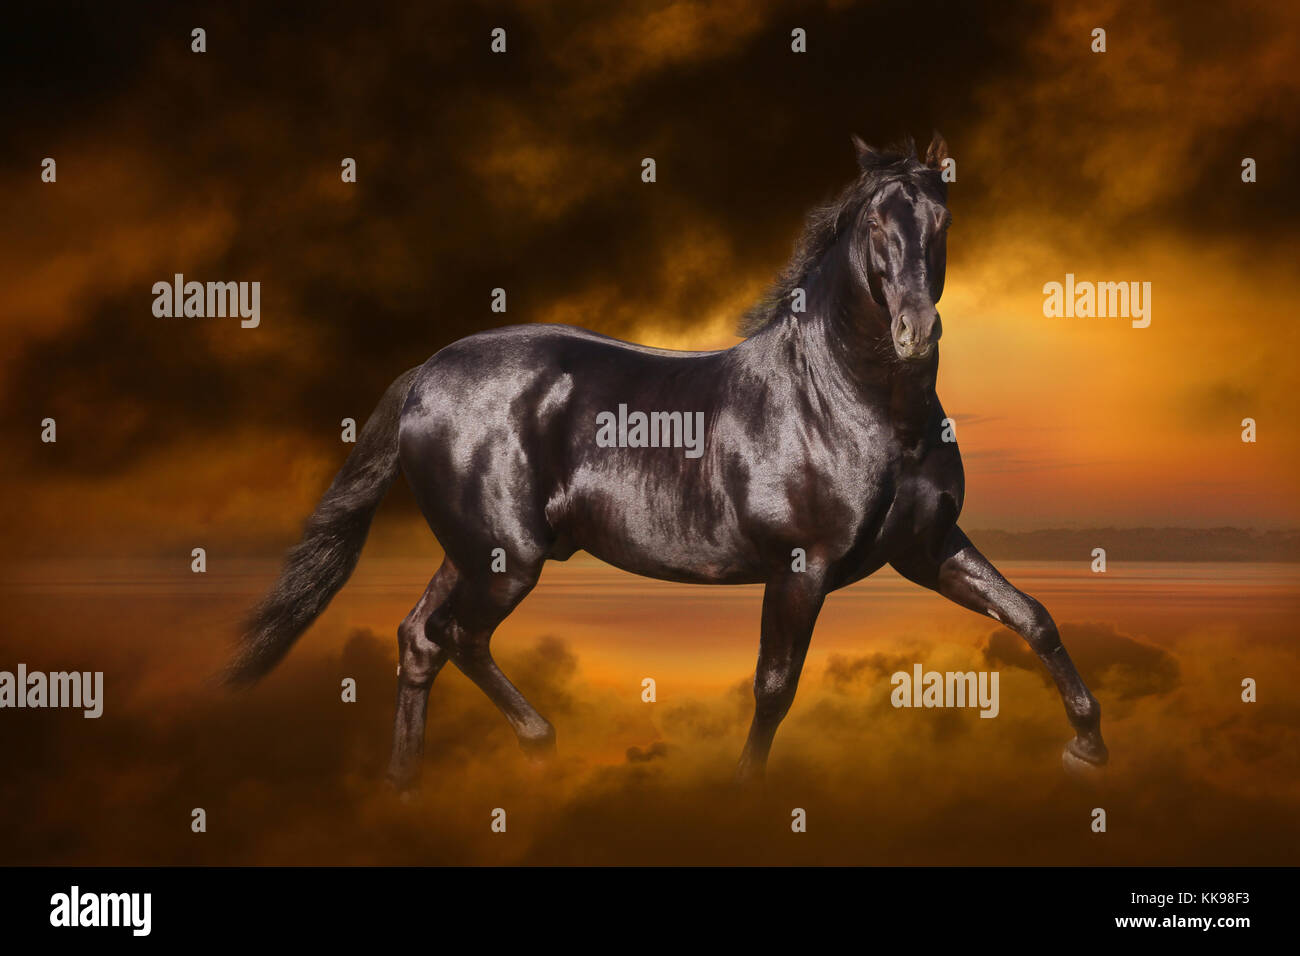 A magnificent black stallion trots through a dramatic orange and black misty, cloudy landscape. - Stock Image